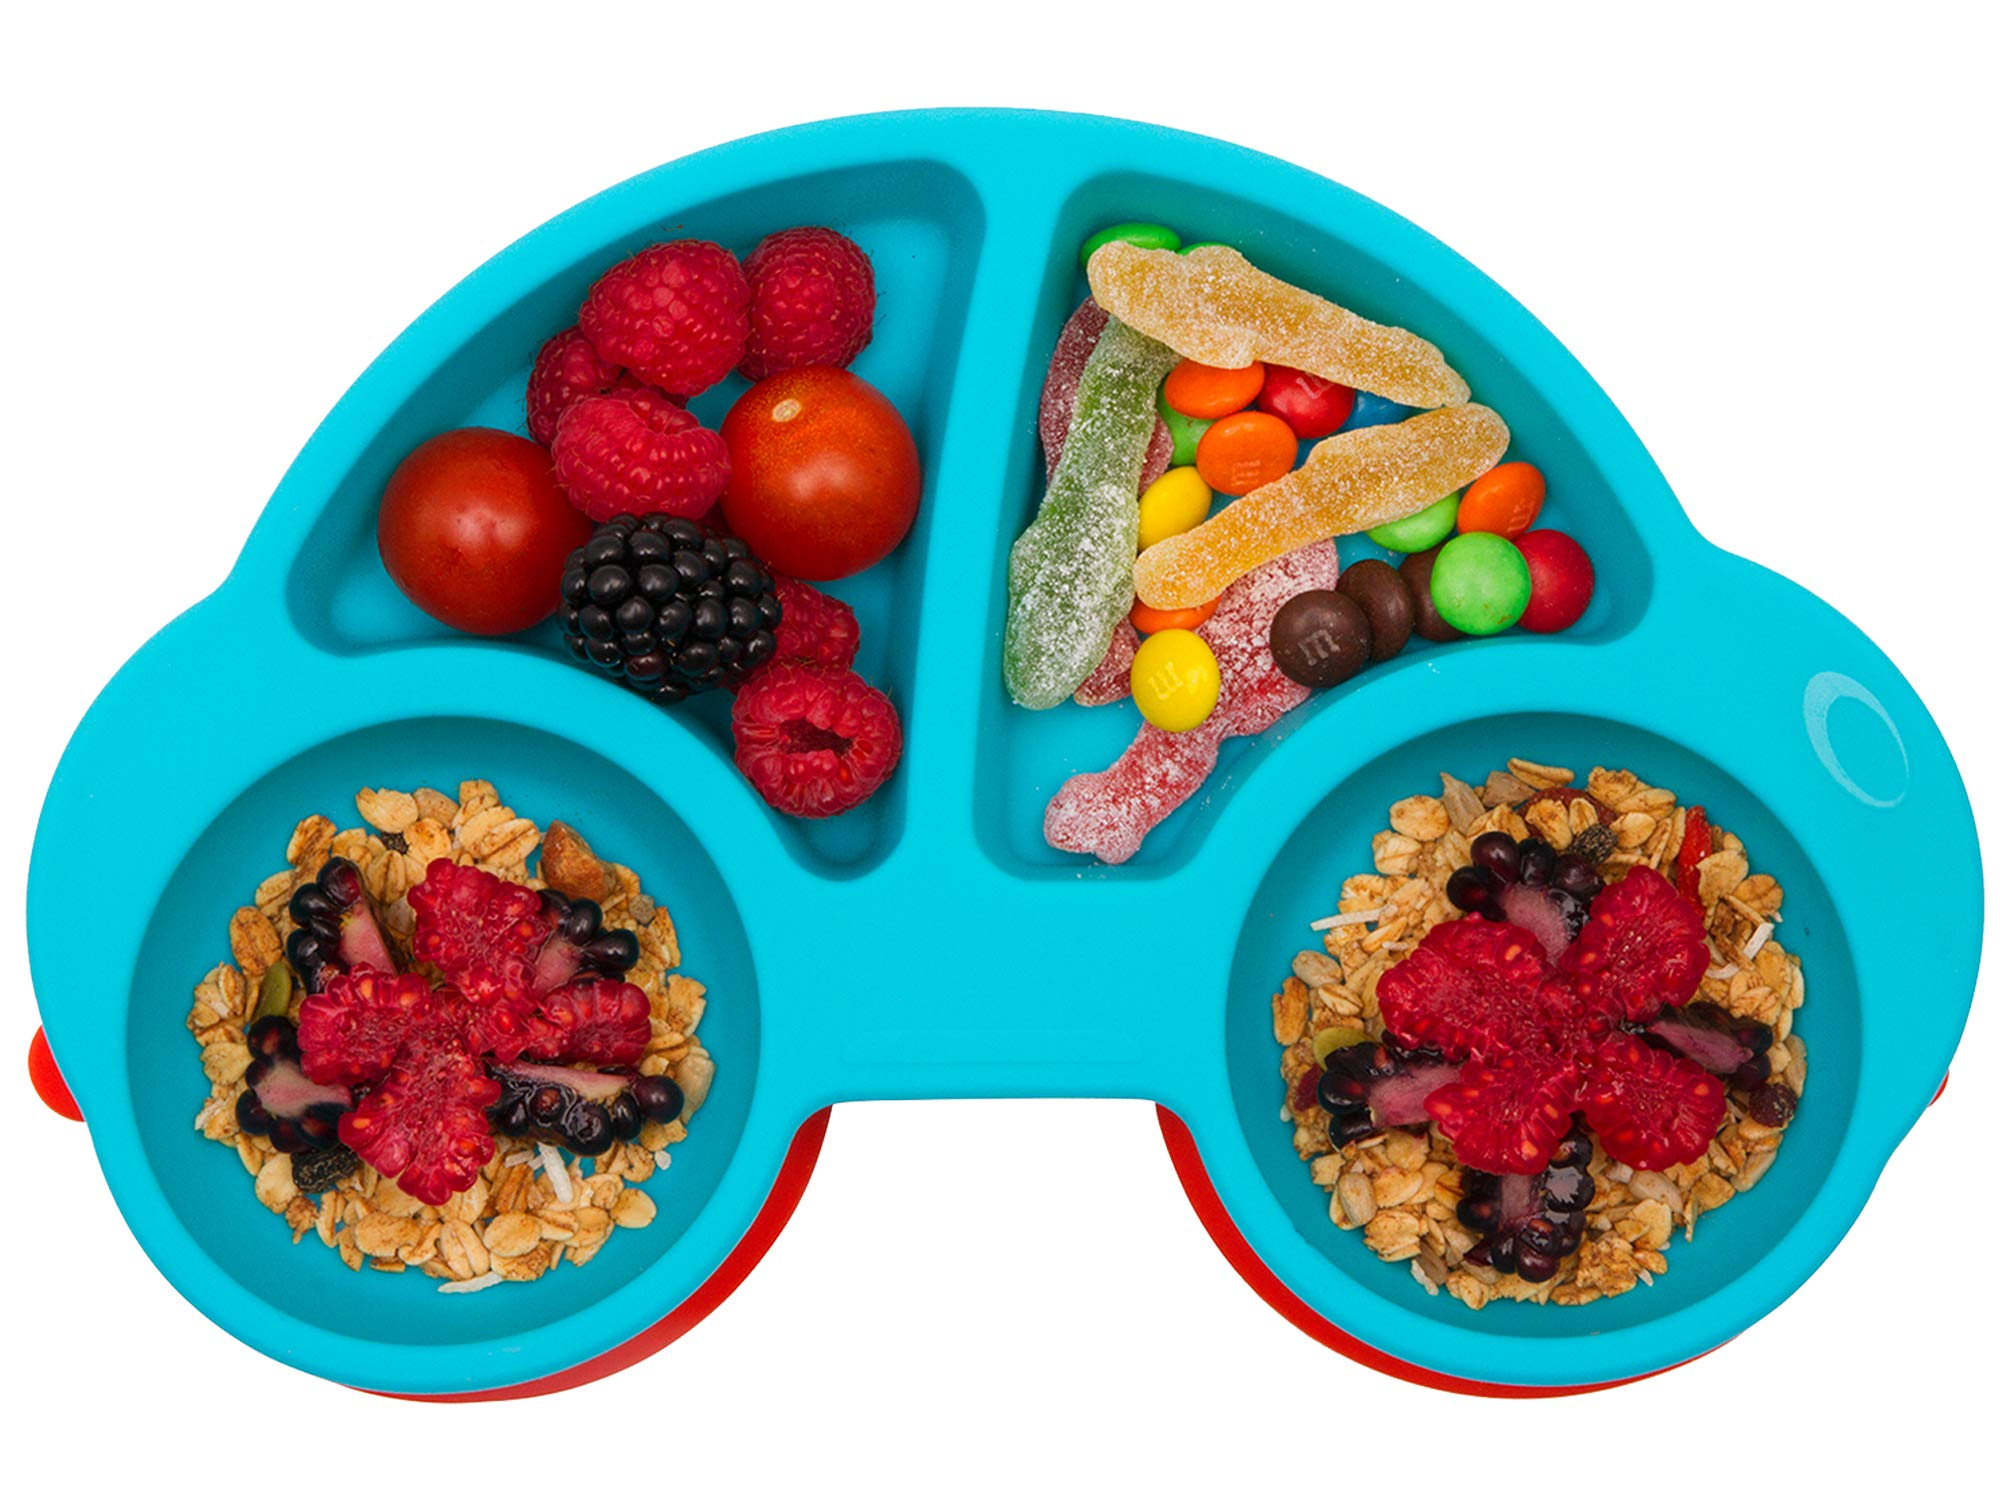 Qshare Toddler Plates, Portable Baby Plates for Toddlers, BPA-Free FDA Approved Strong Suction Plates for Toddlers, Dishwasher and Microwave Safe Silicone Placemat 11x8x1'' (CarBlue) by Qshare